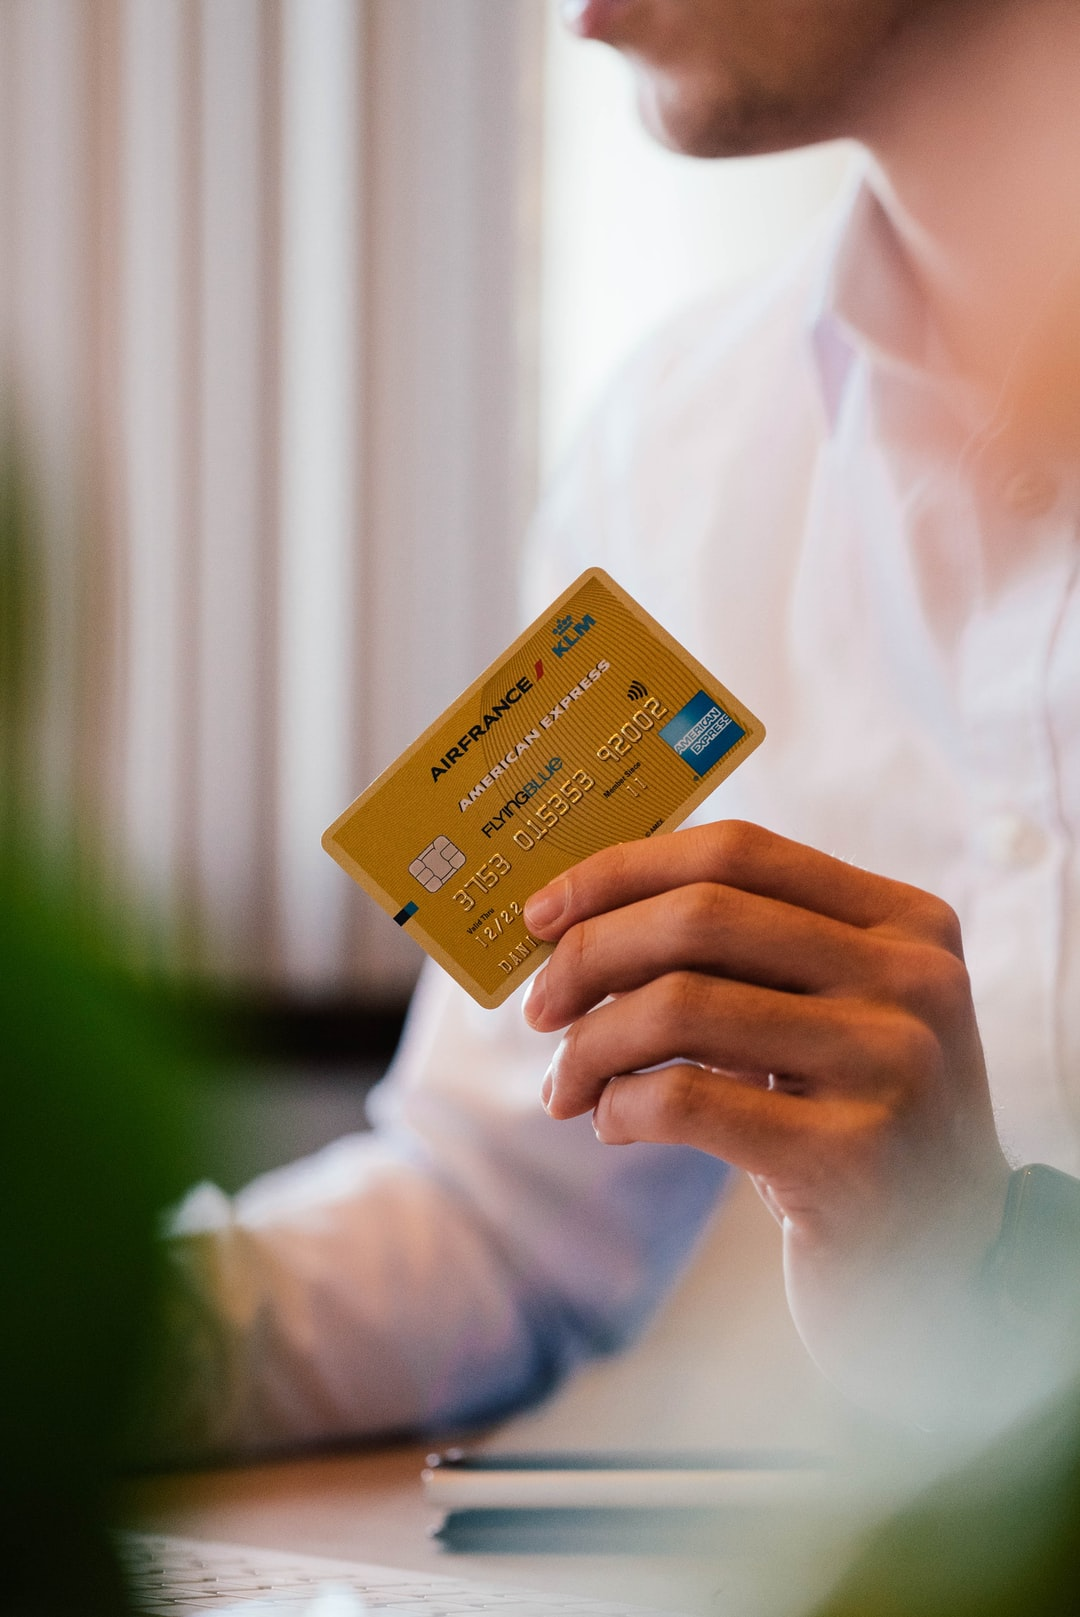 Getting Credit Cards When You're Starting Out with Bad Credit